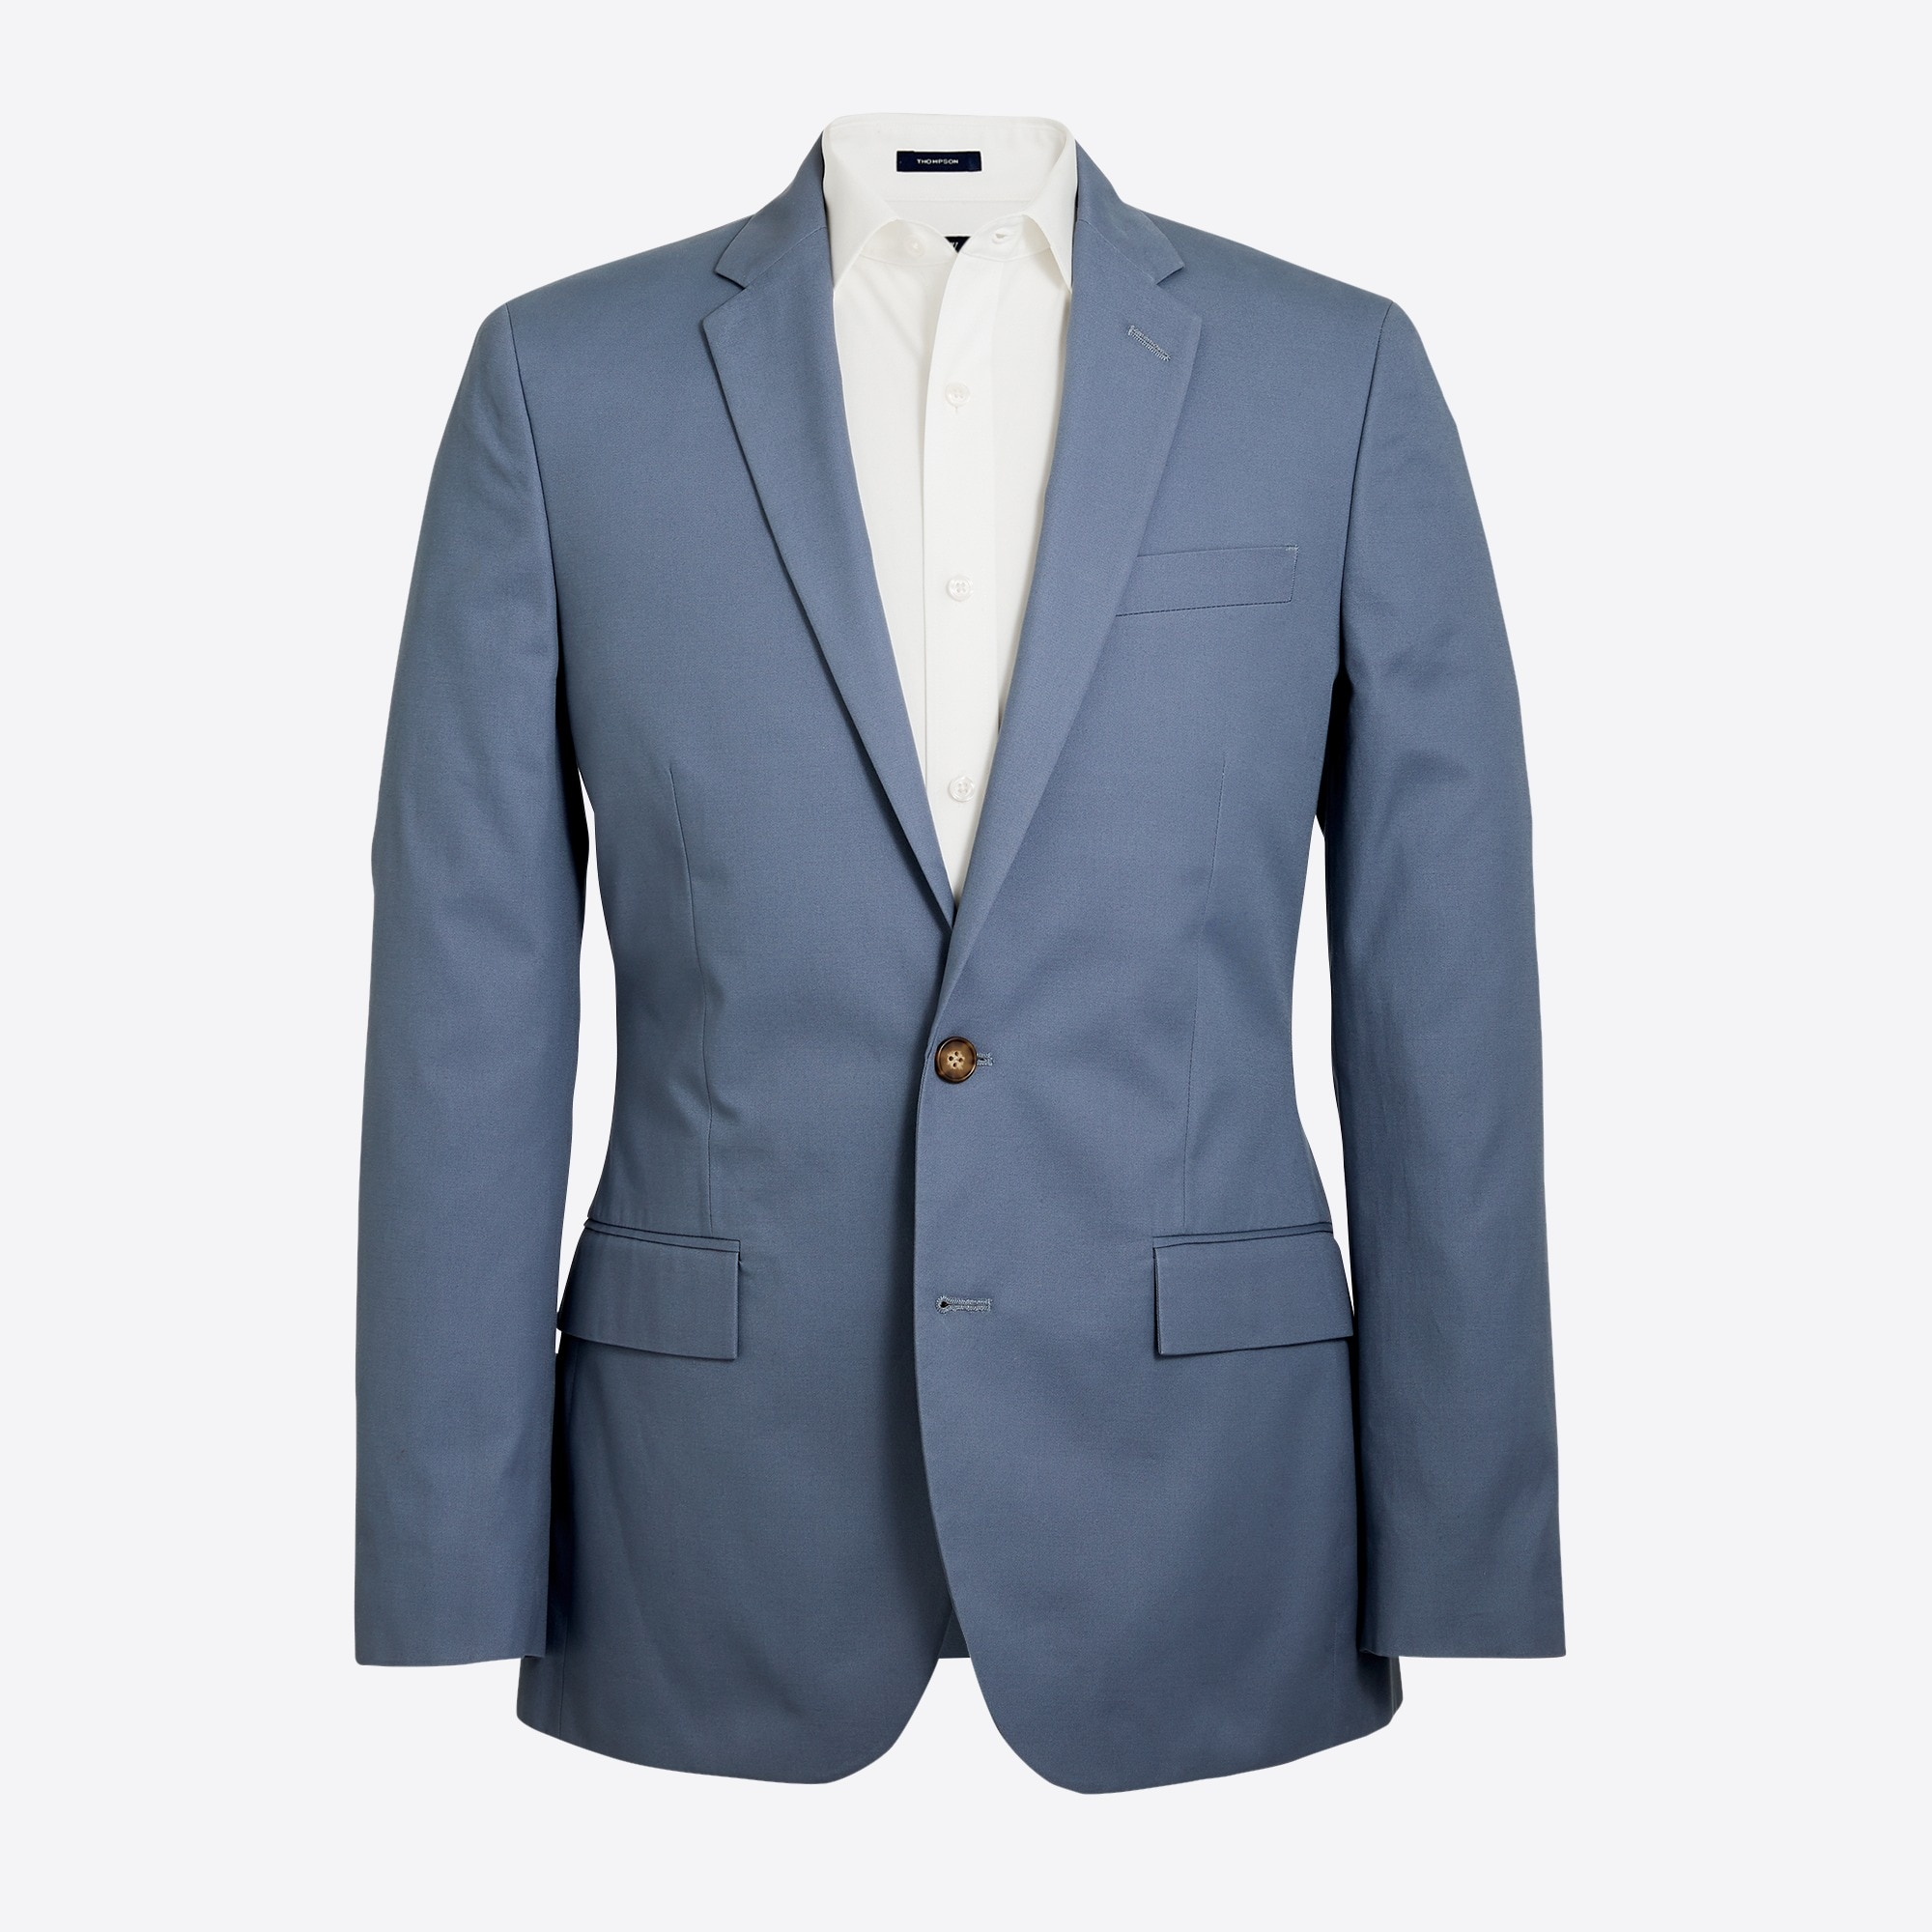 Image 2 for Slim-fit Thompson suit jacket in chino